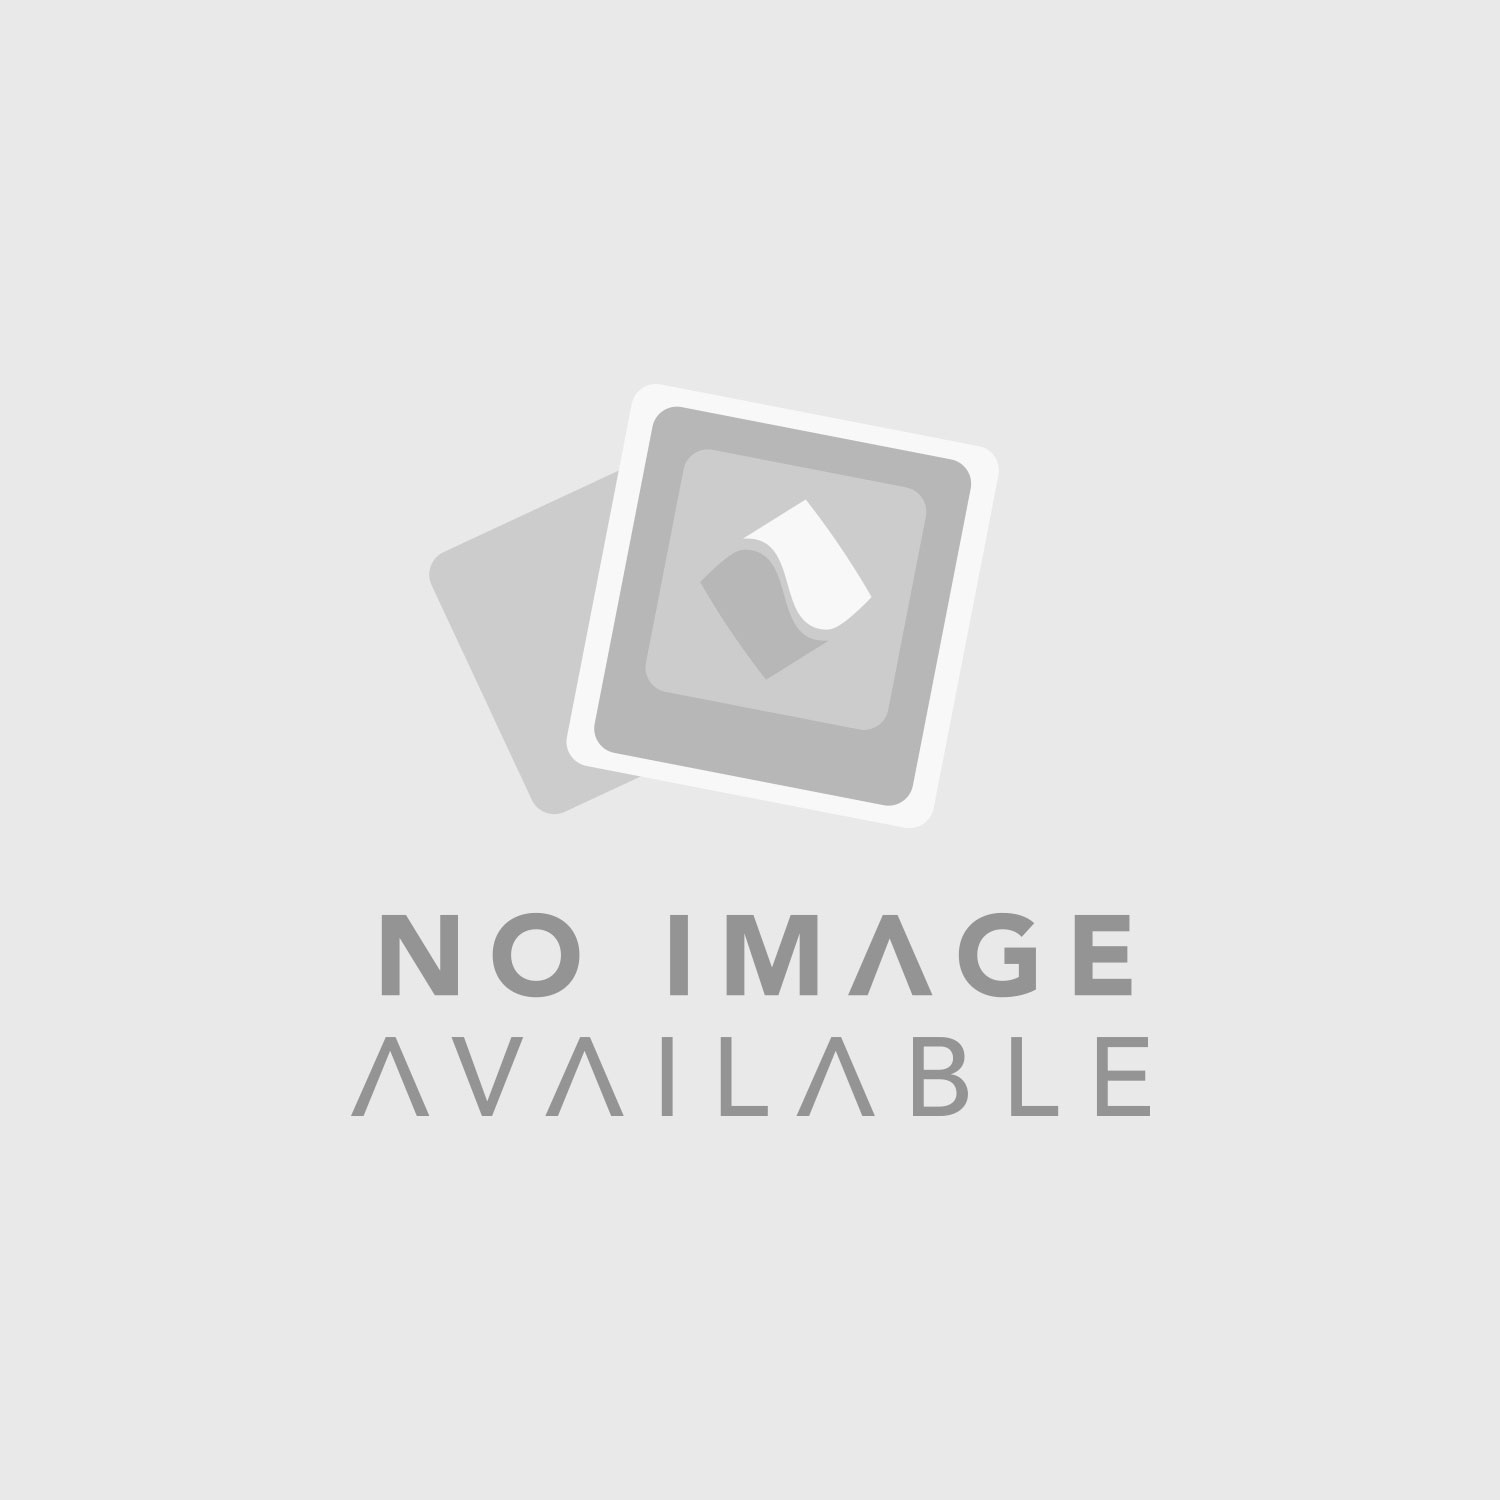 RDL CP-2B Double Cover Plate (Black)